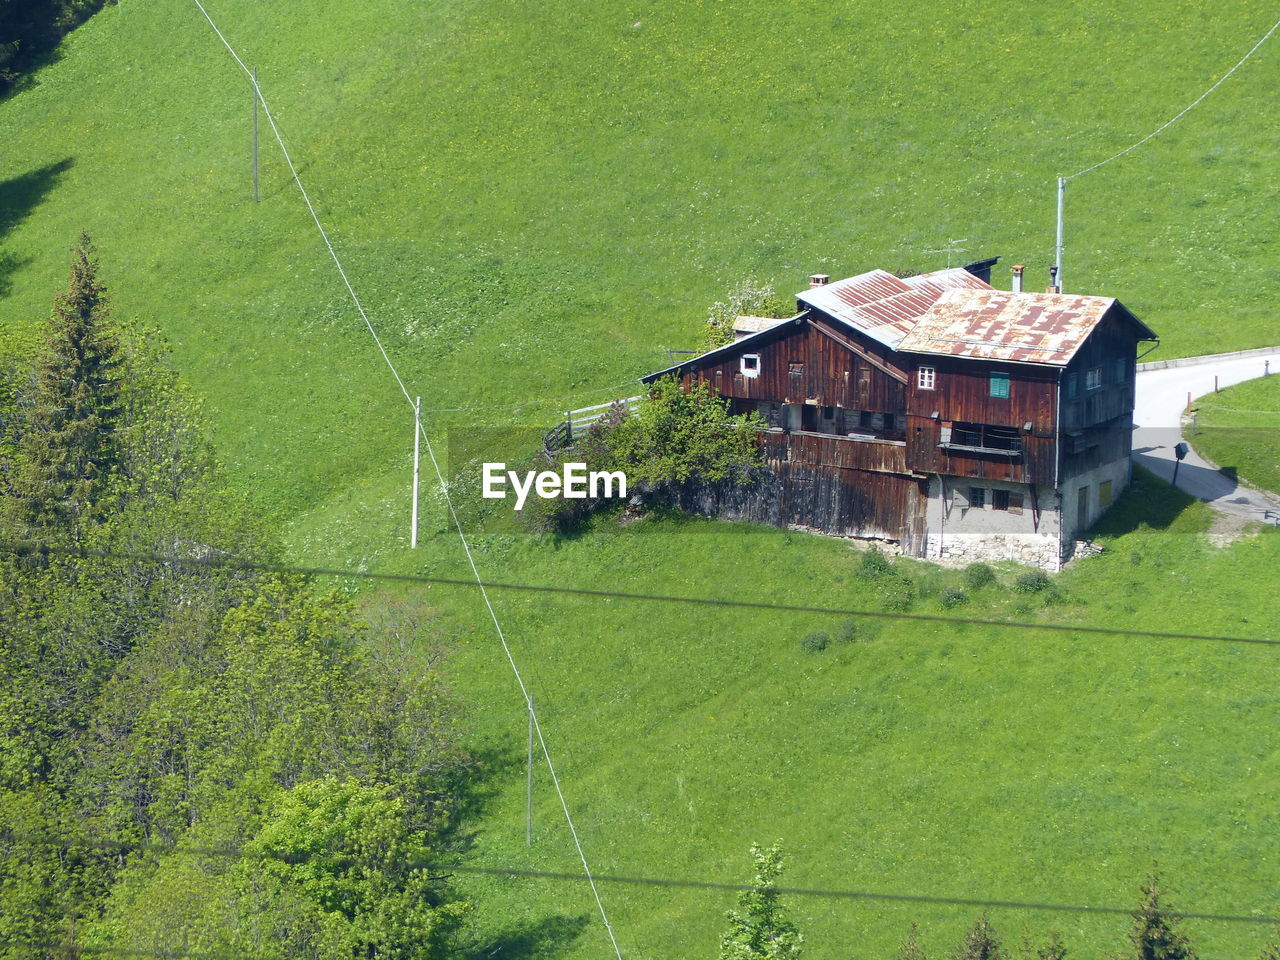 HIGH ANGLE VIEW OF HOUSE ON FIELD